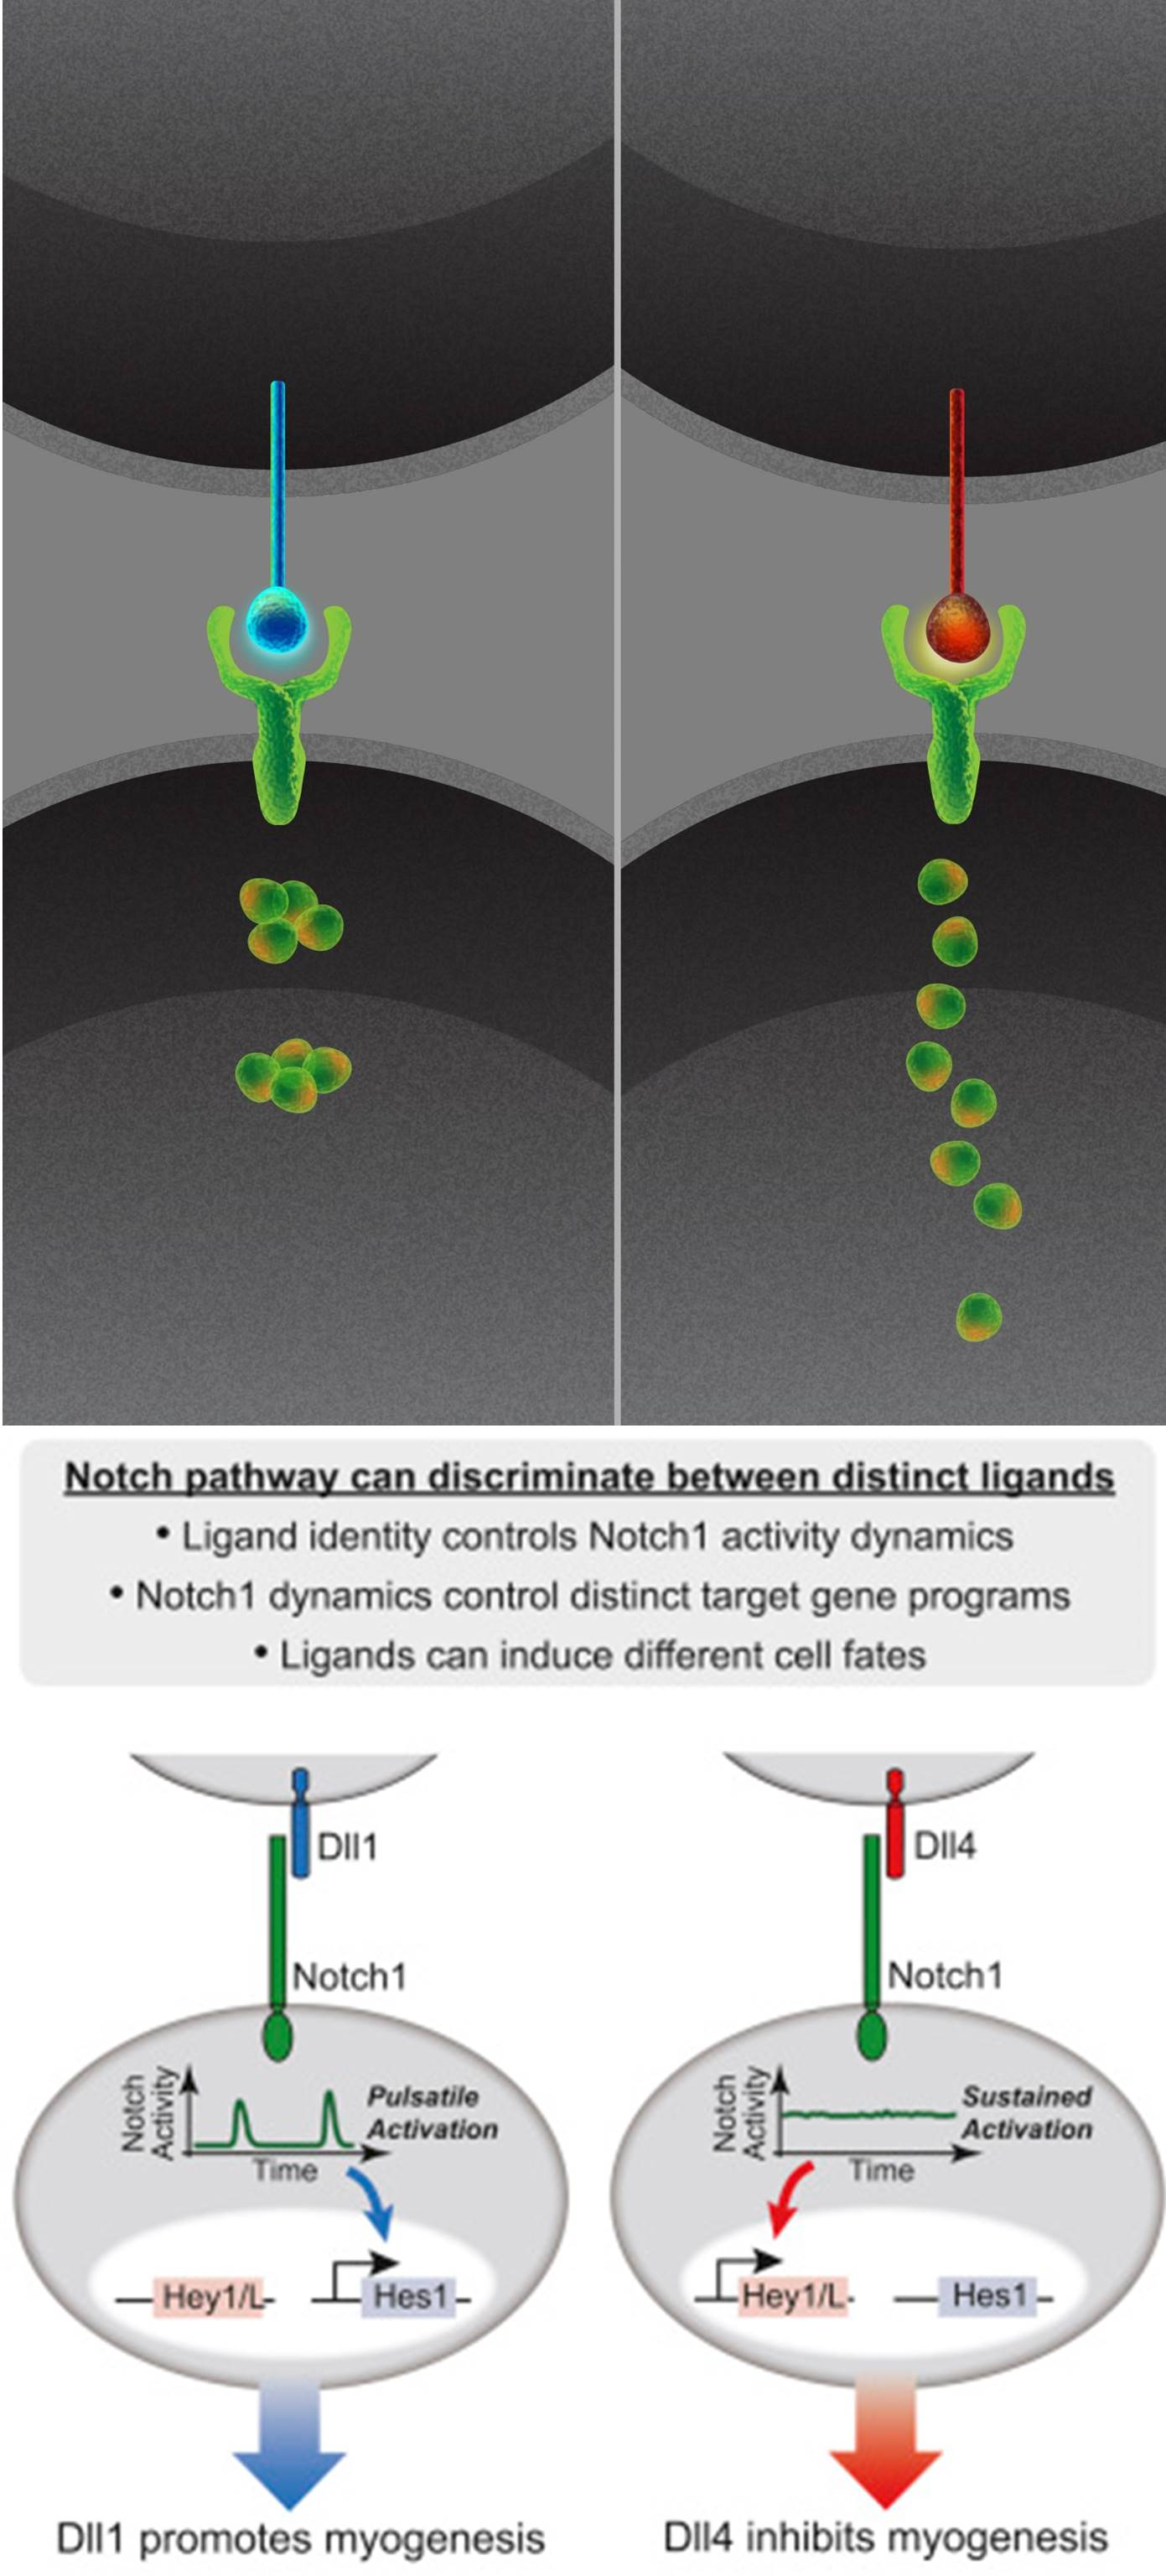 How cells discriminate ligands through dynamic signaling